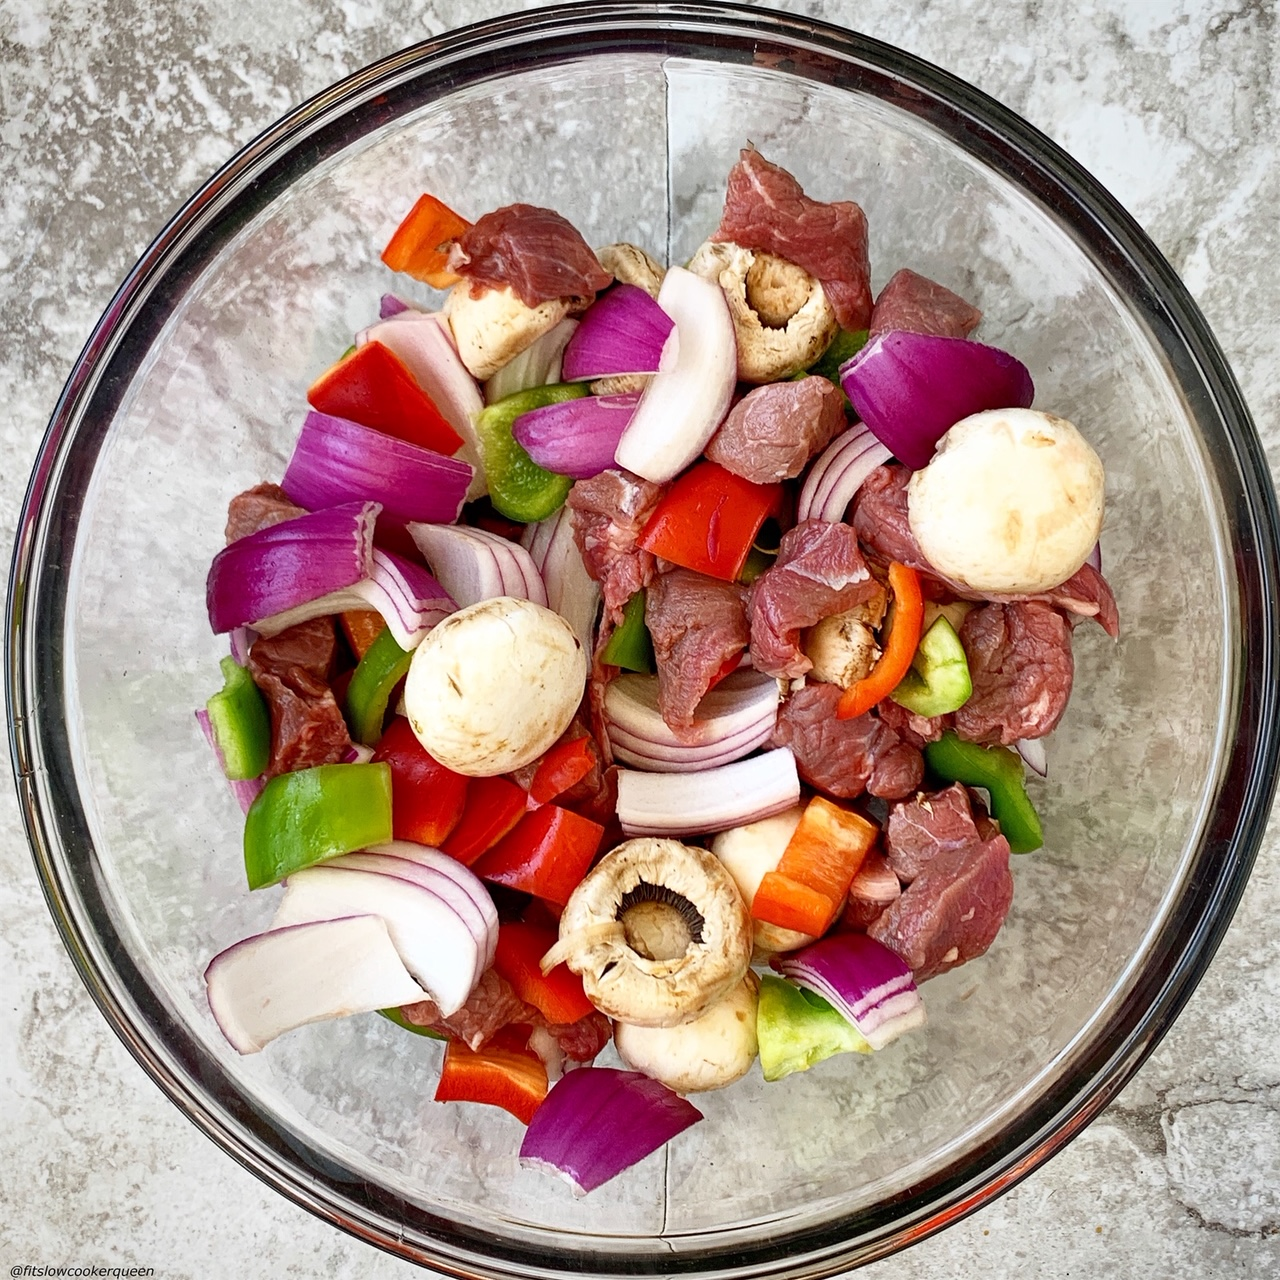 meat & vegetables in a bowl for Sheet Pan Deconstructed Beef Kebabs (Low-Carb, Paleo, Whole30)